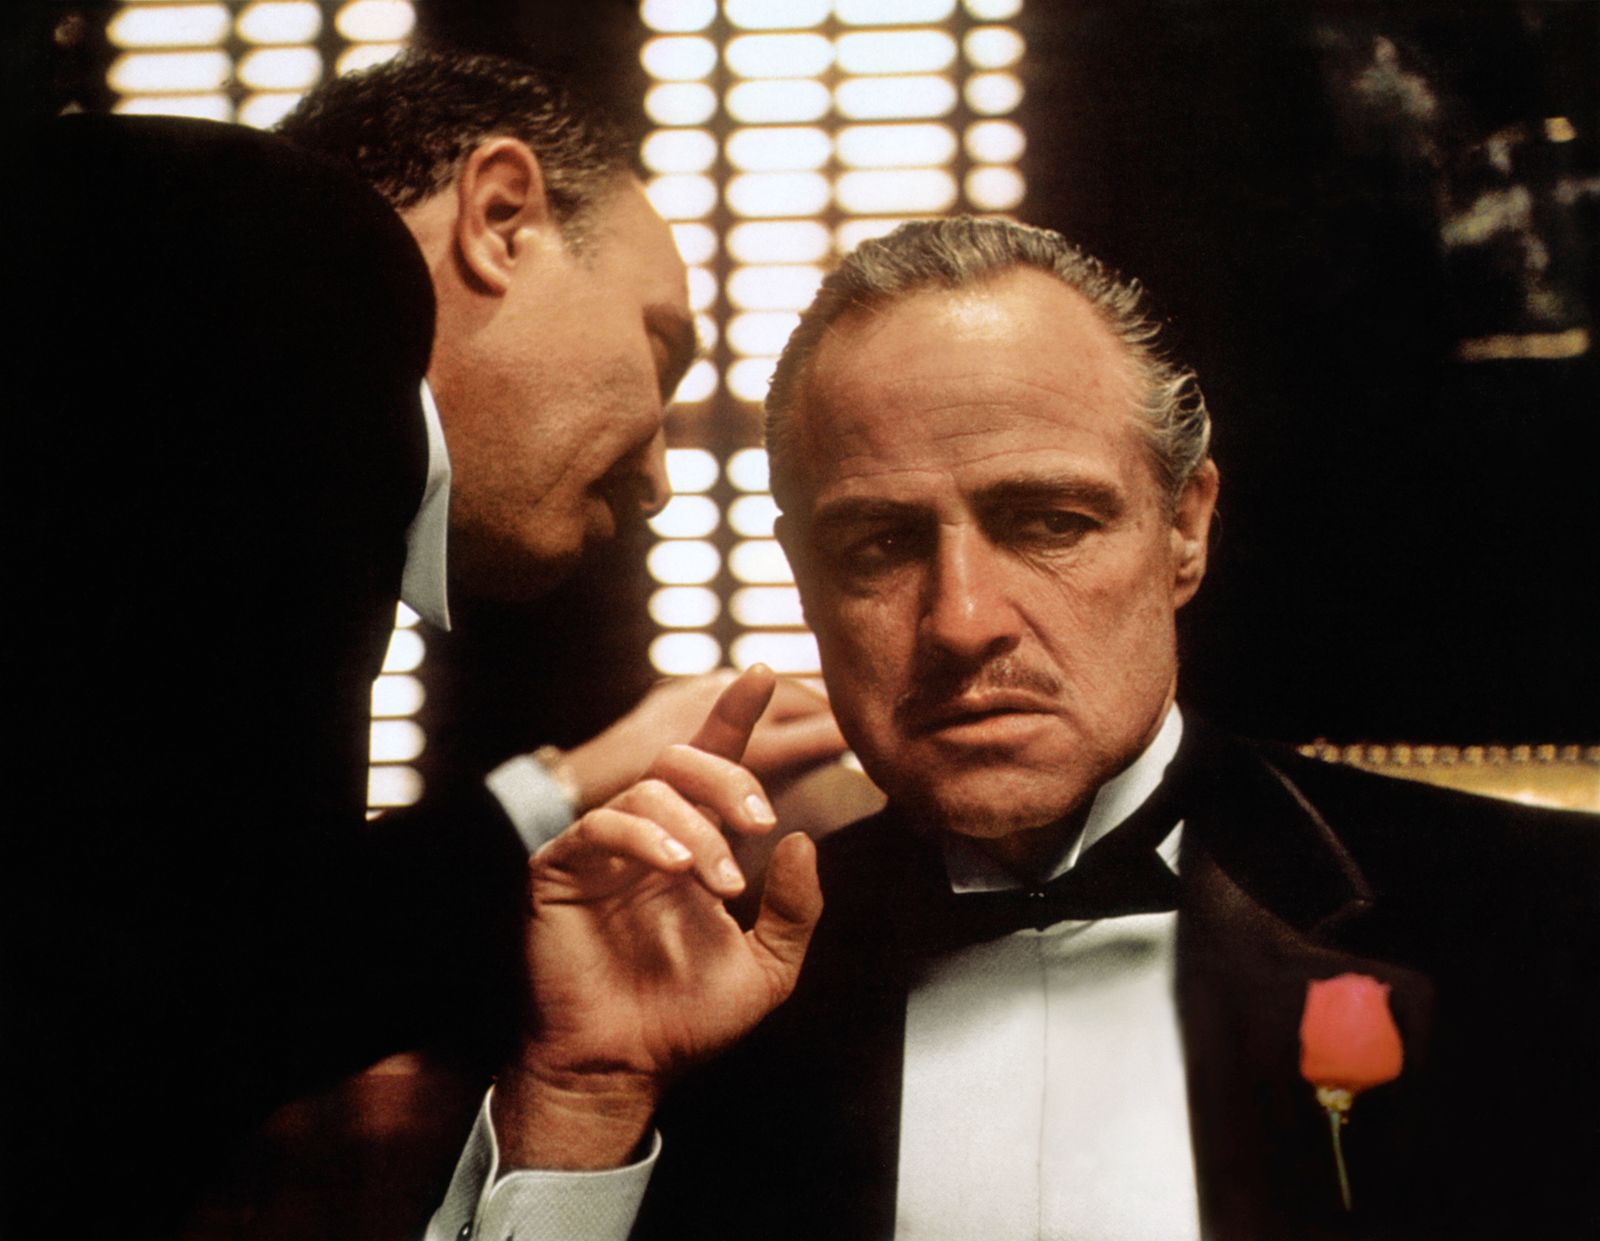 Marlon Brando Characters: Don Vito Corleone Film: The Godfather (USA 1972) / Literaturverfilmung (Based On The Book By M